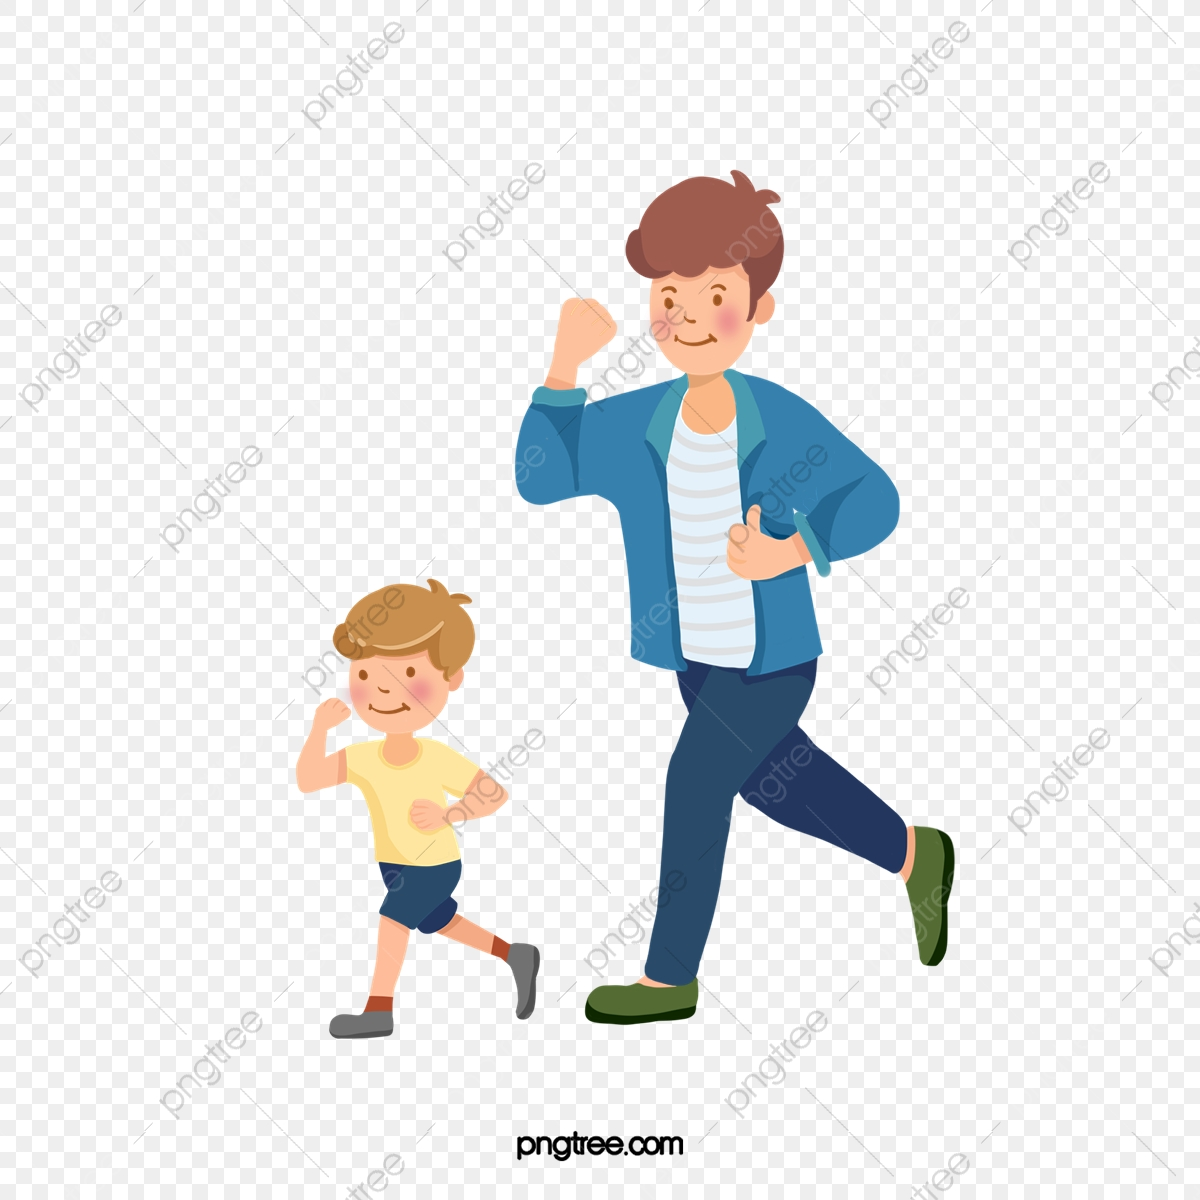 Cartoon Father And Son Running Together, Father, Son, Dad